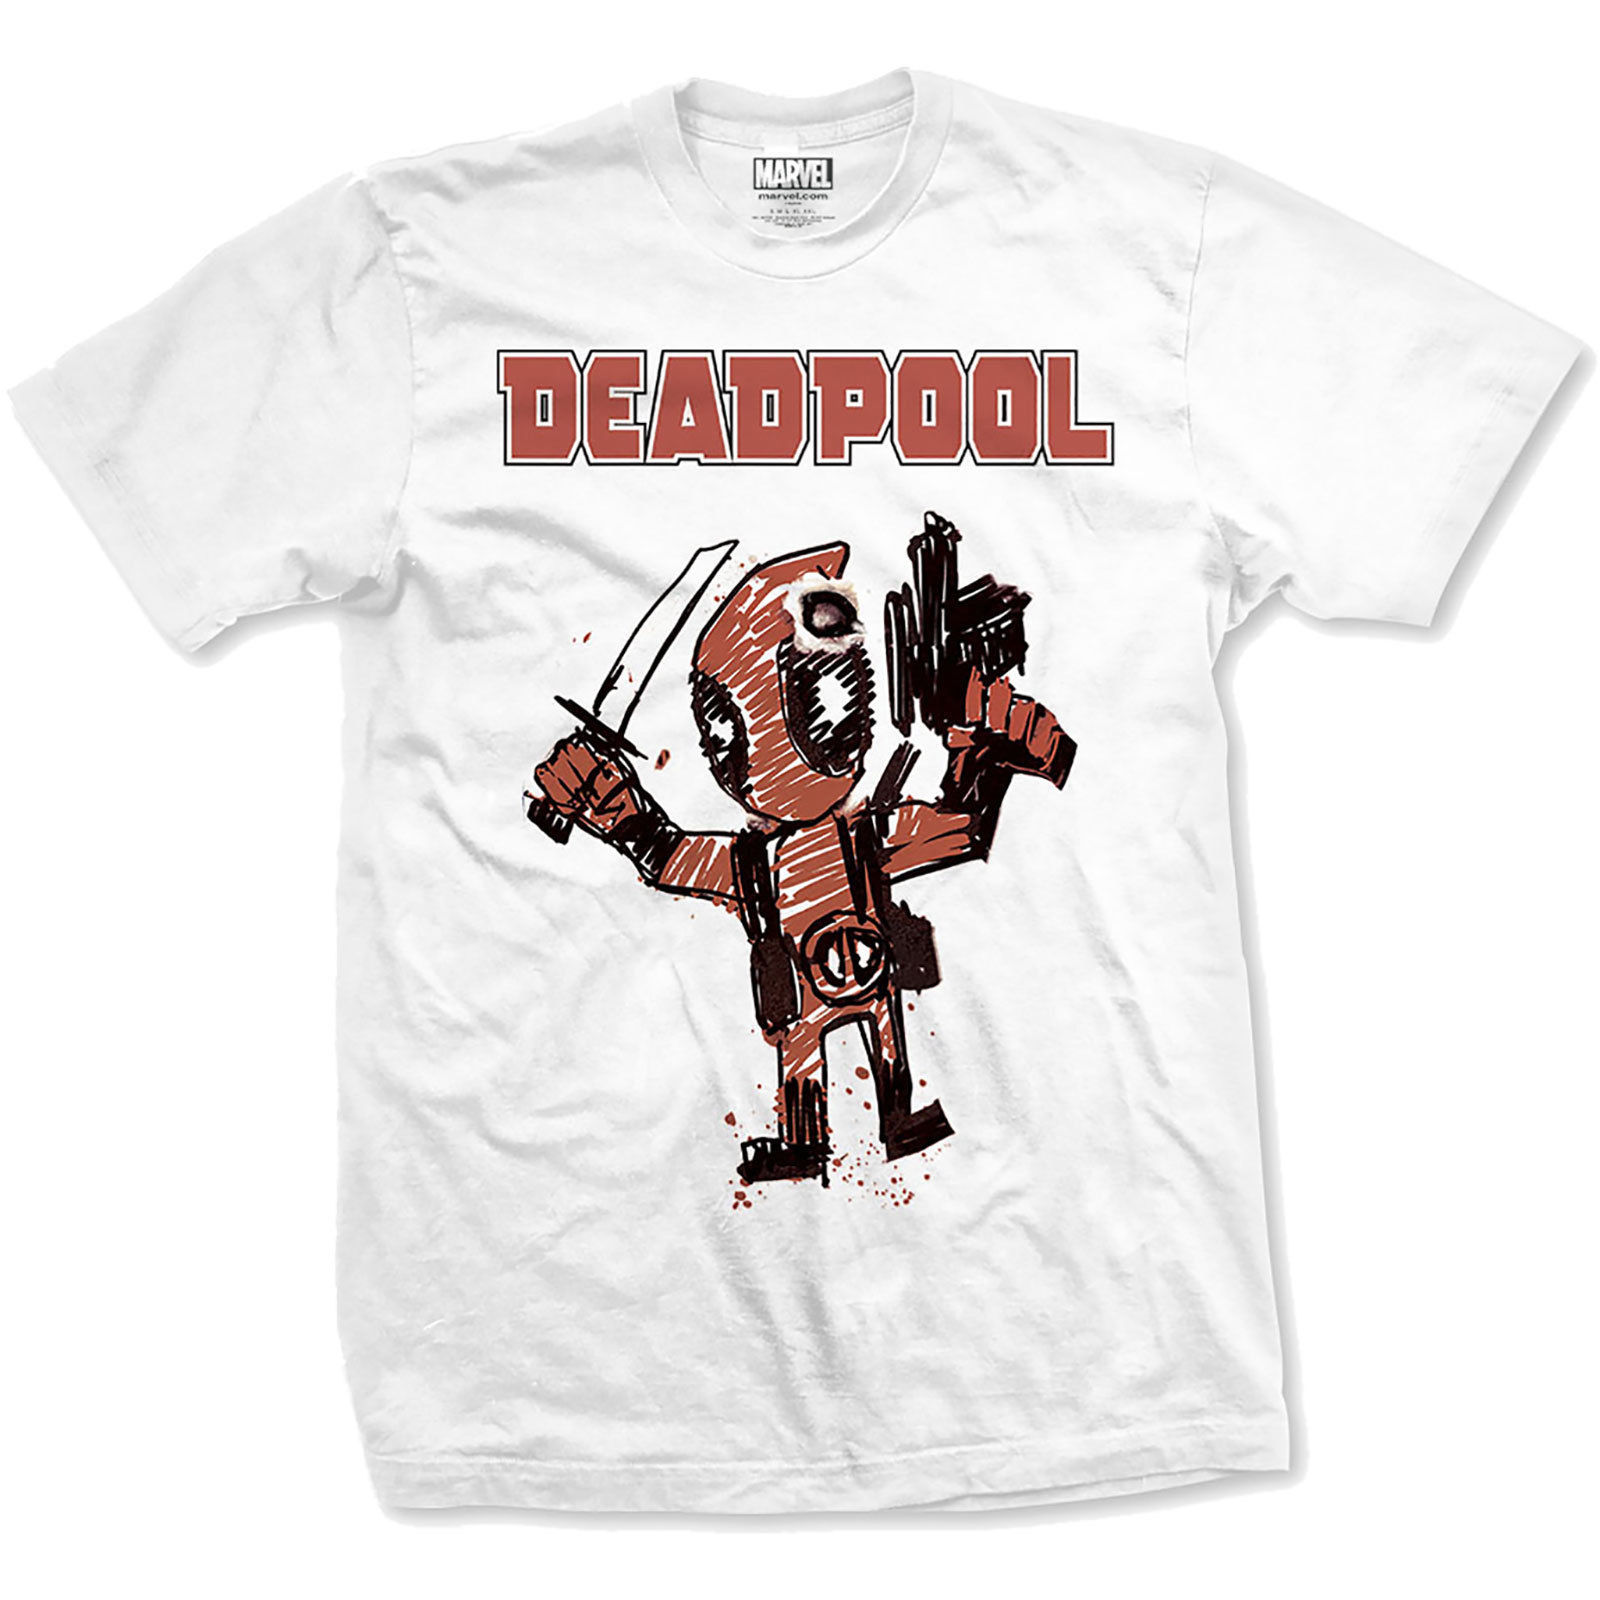 Deadpool Cartoon Bullet (X Large) image